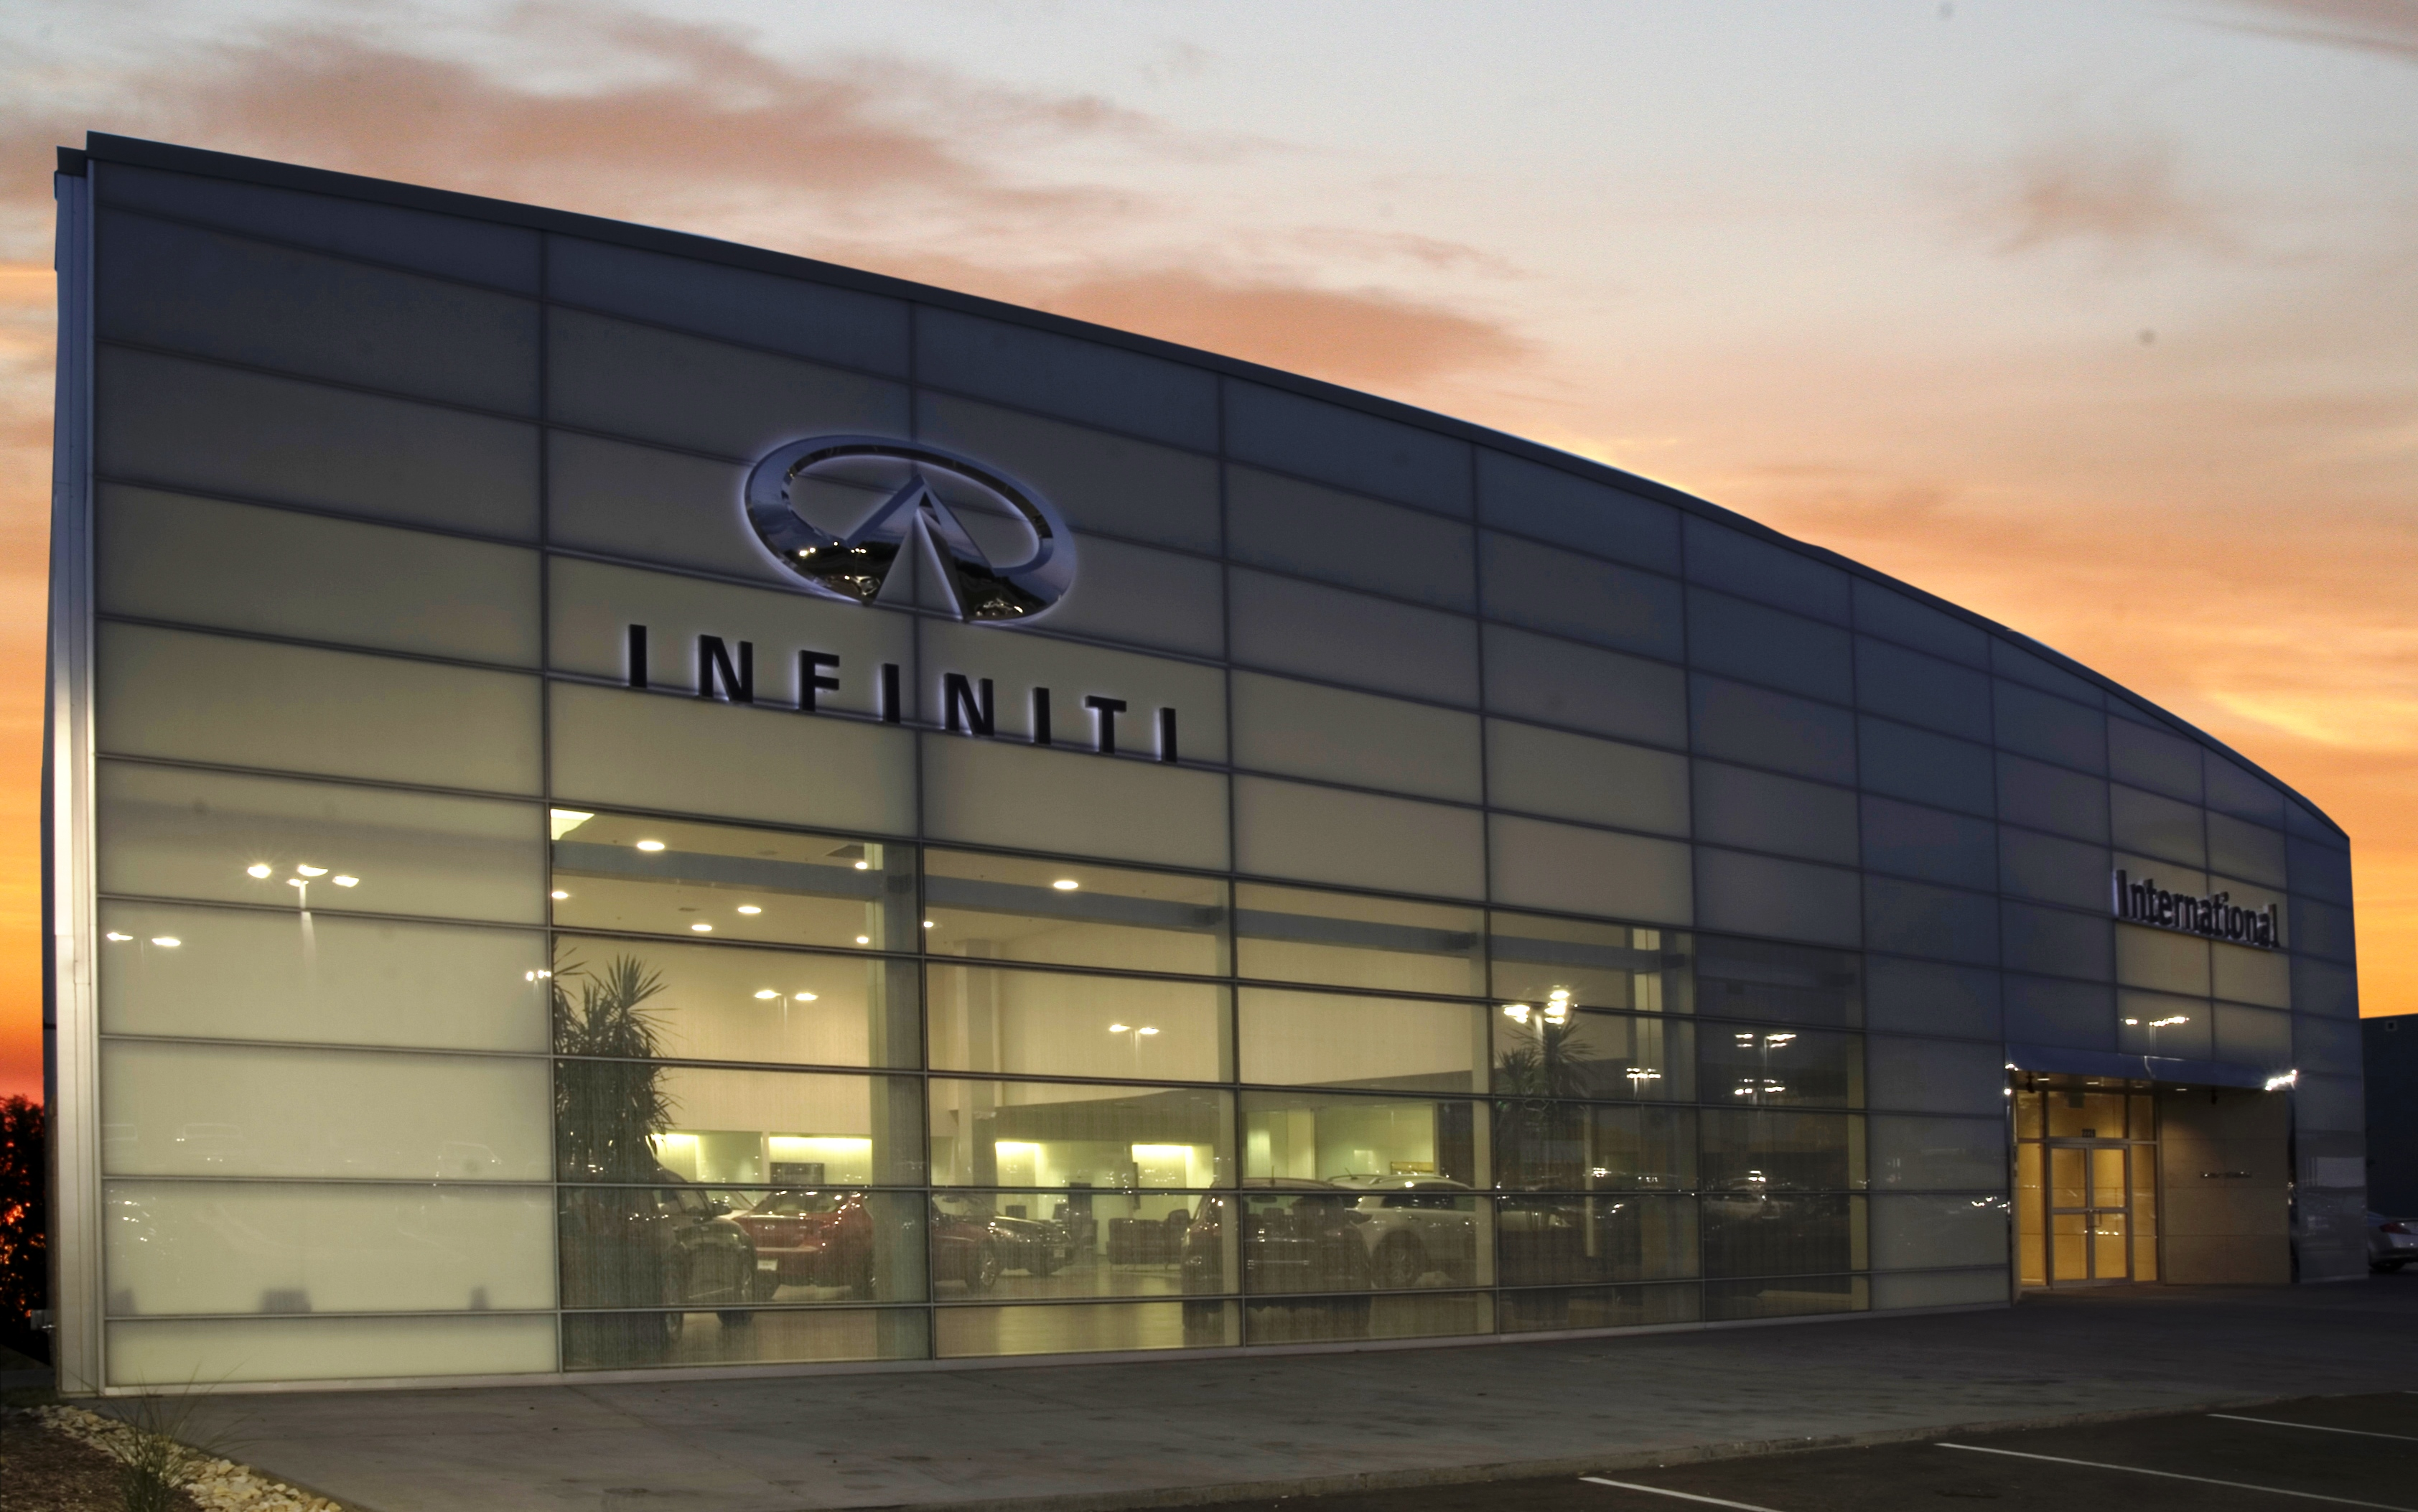 only one s is infinity of dealership eighties open the ireland that in showroom infiniti late massive brand cars united irelands around and america belfast since img has states used been